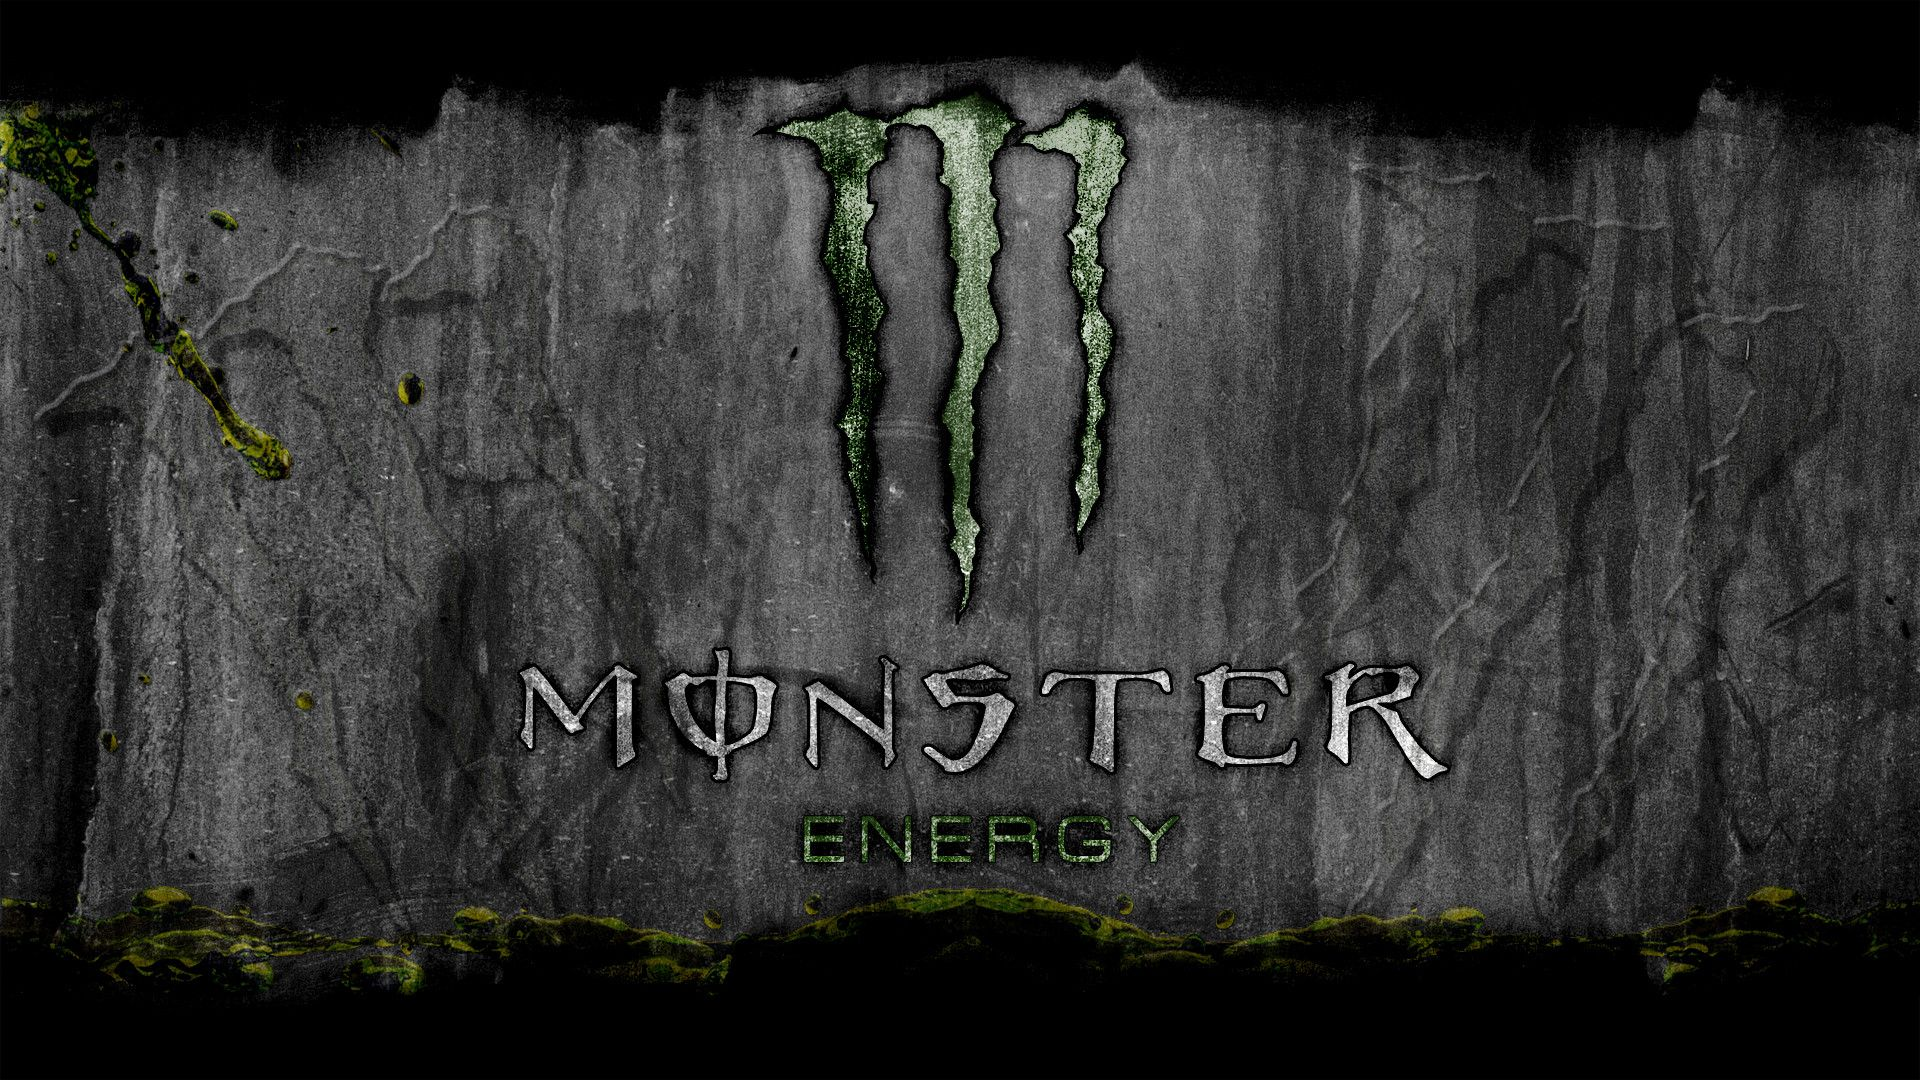 Monster energy desktop wallpaper 54105 1920x1080 px hdwallsource monster energy desktop wallpaper 54105 voltagebd Images